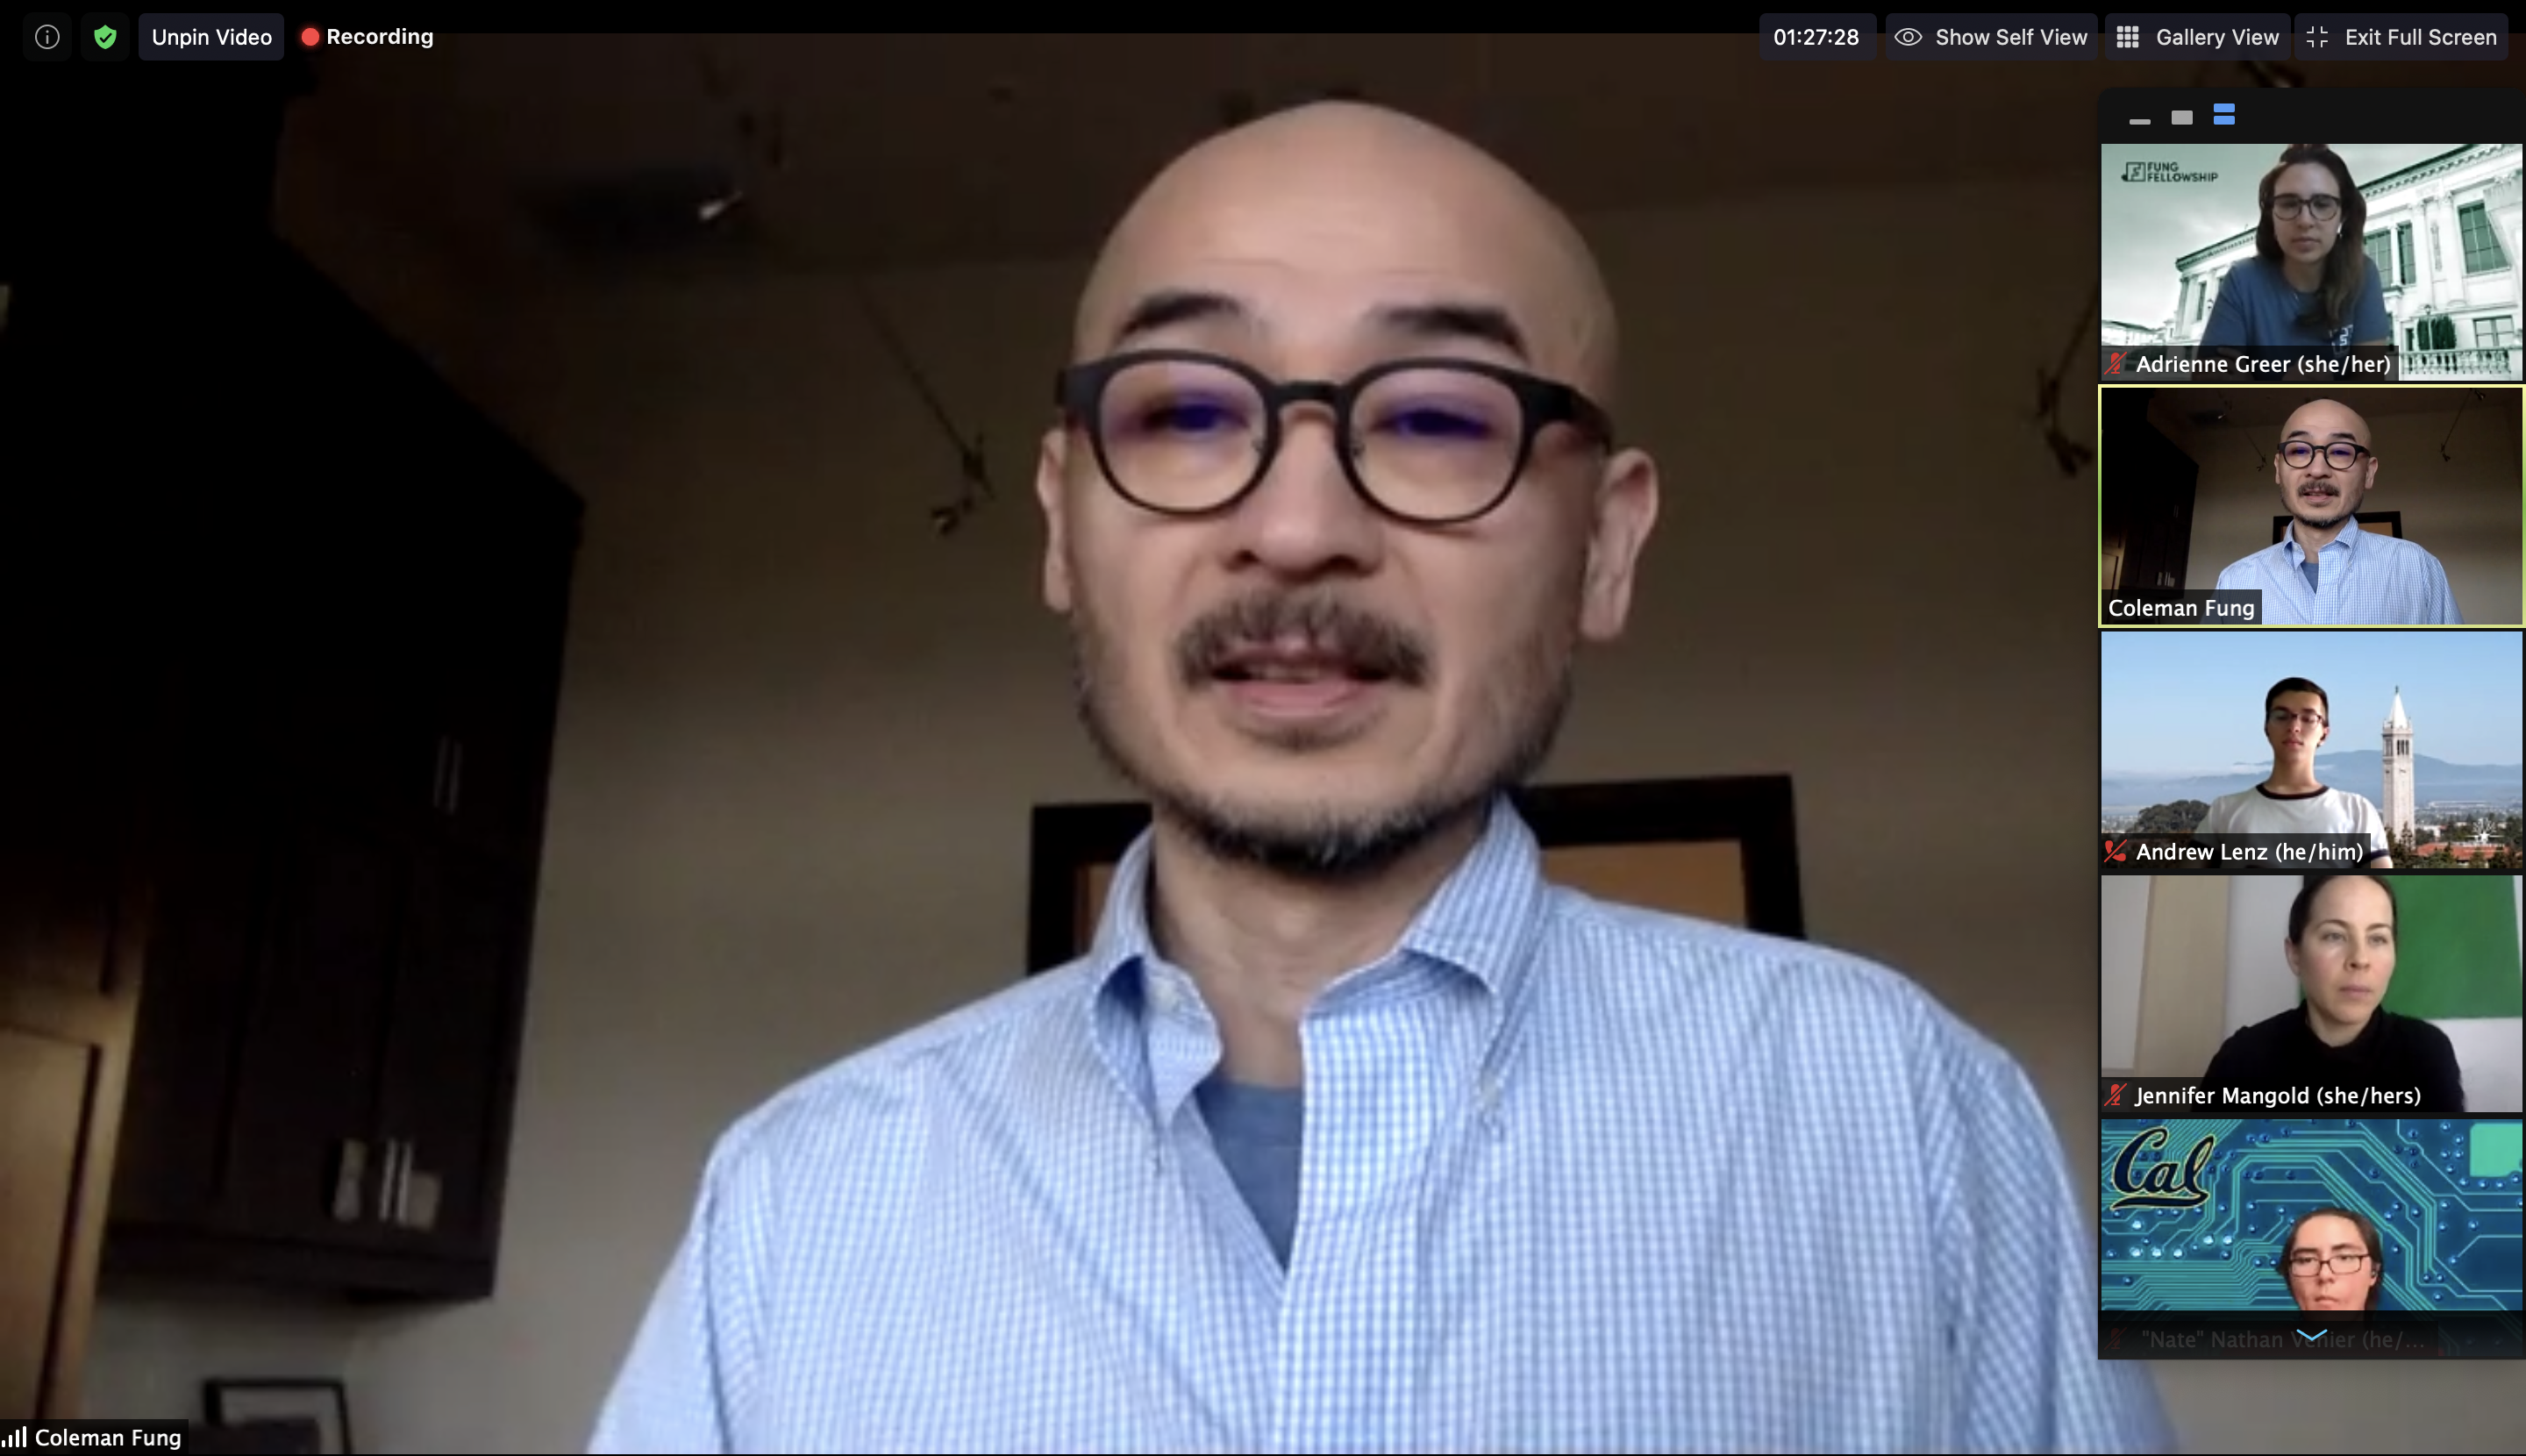 Screenshot of a Zoom call with a bald man in glasses and a light blue button down speaking.